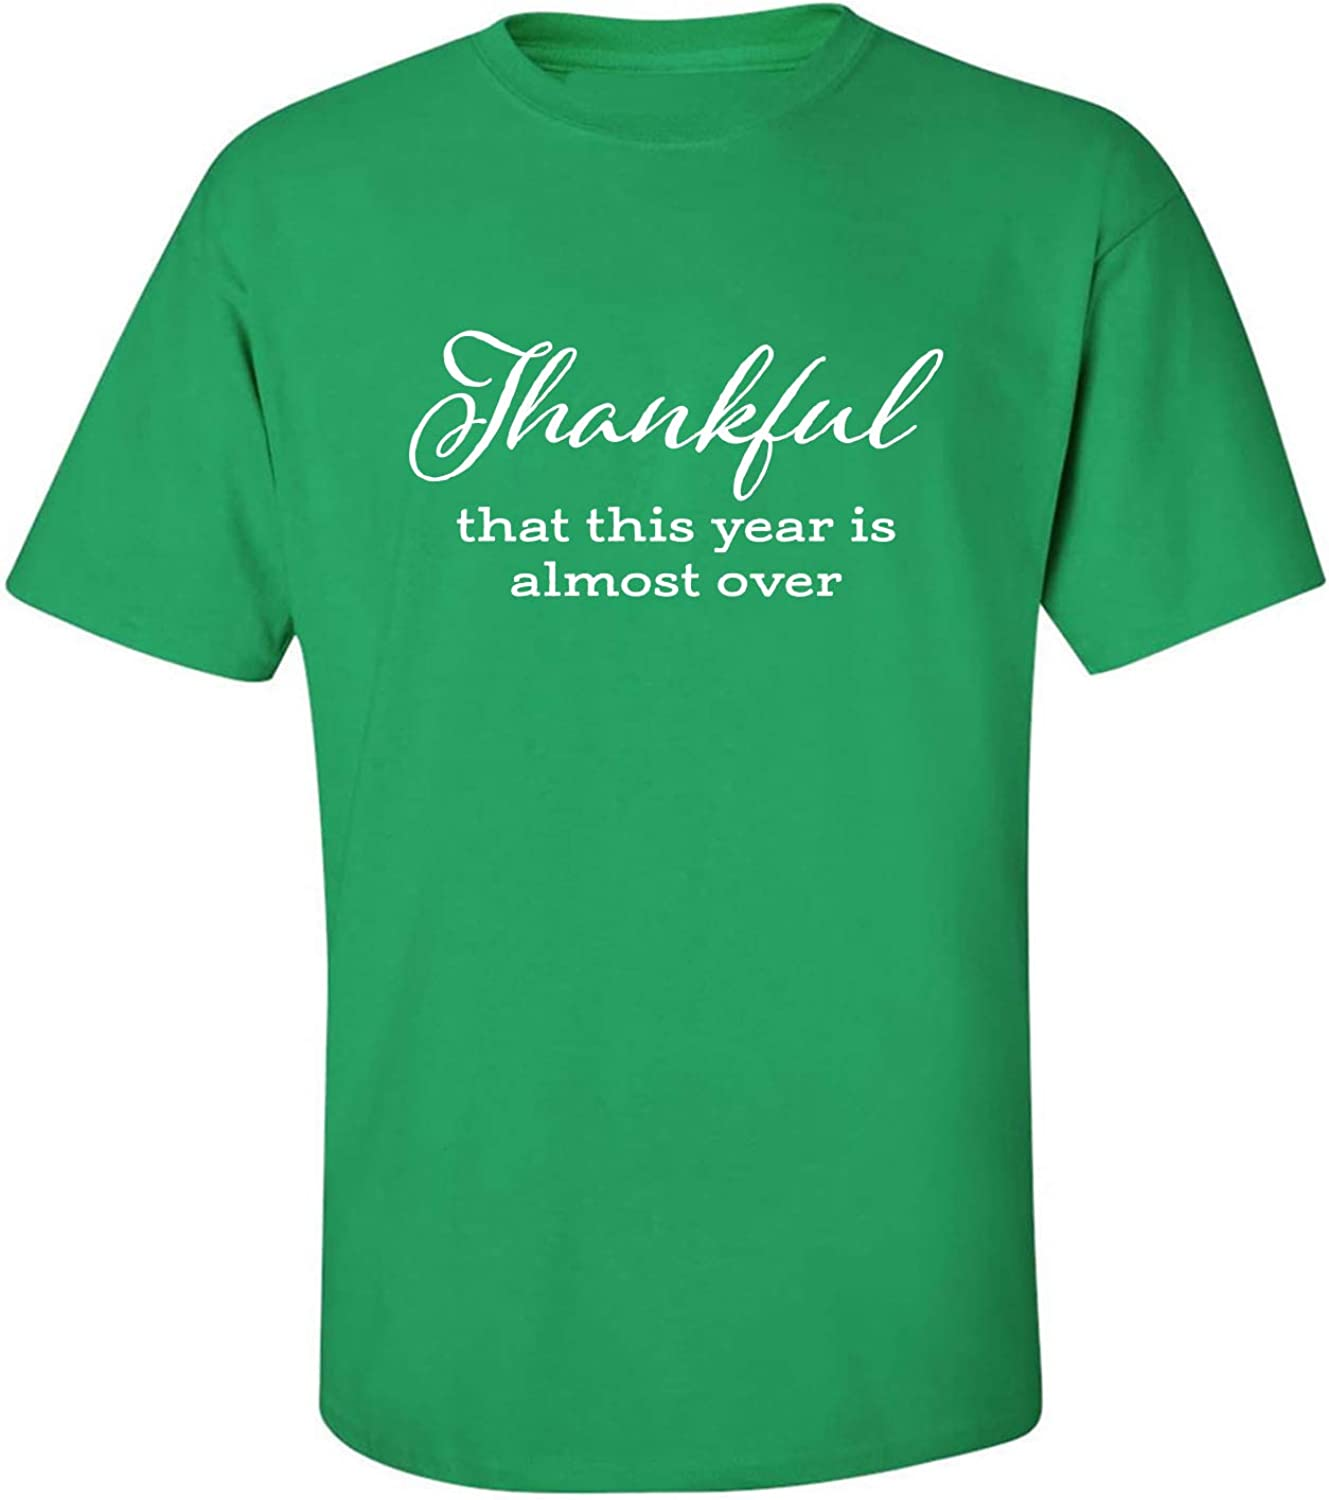 Thankful This Year is Almost Over Adult T-Shirt in Kelly Green - XXXXX-Large